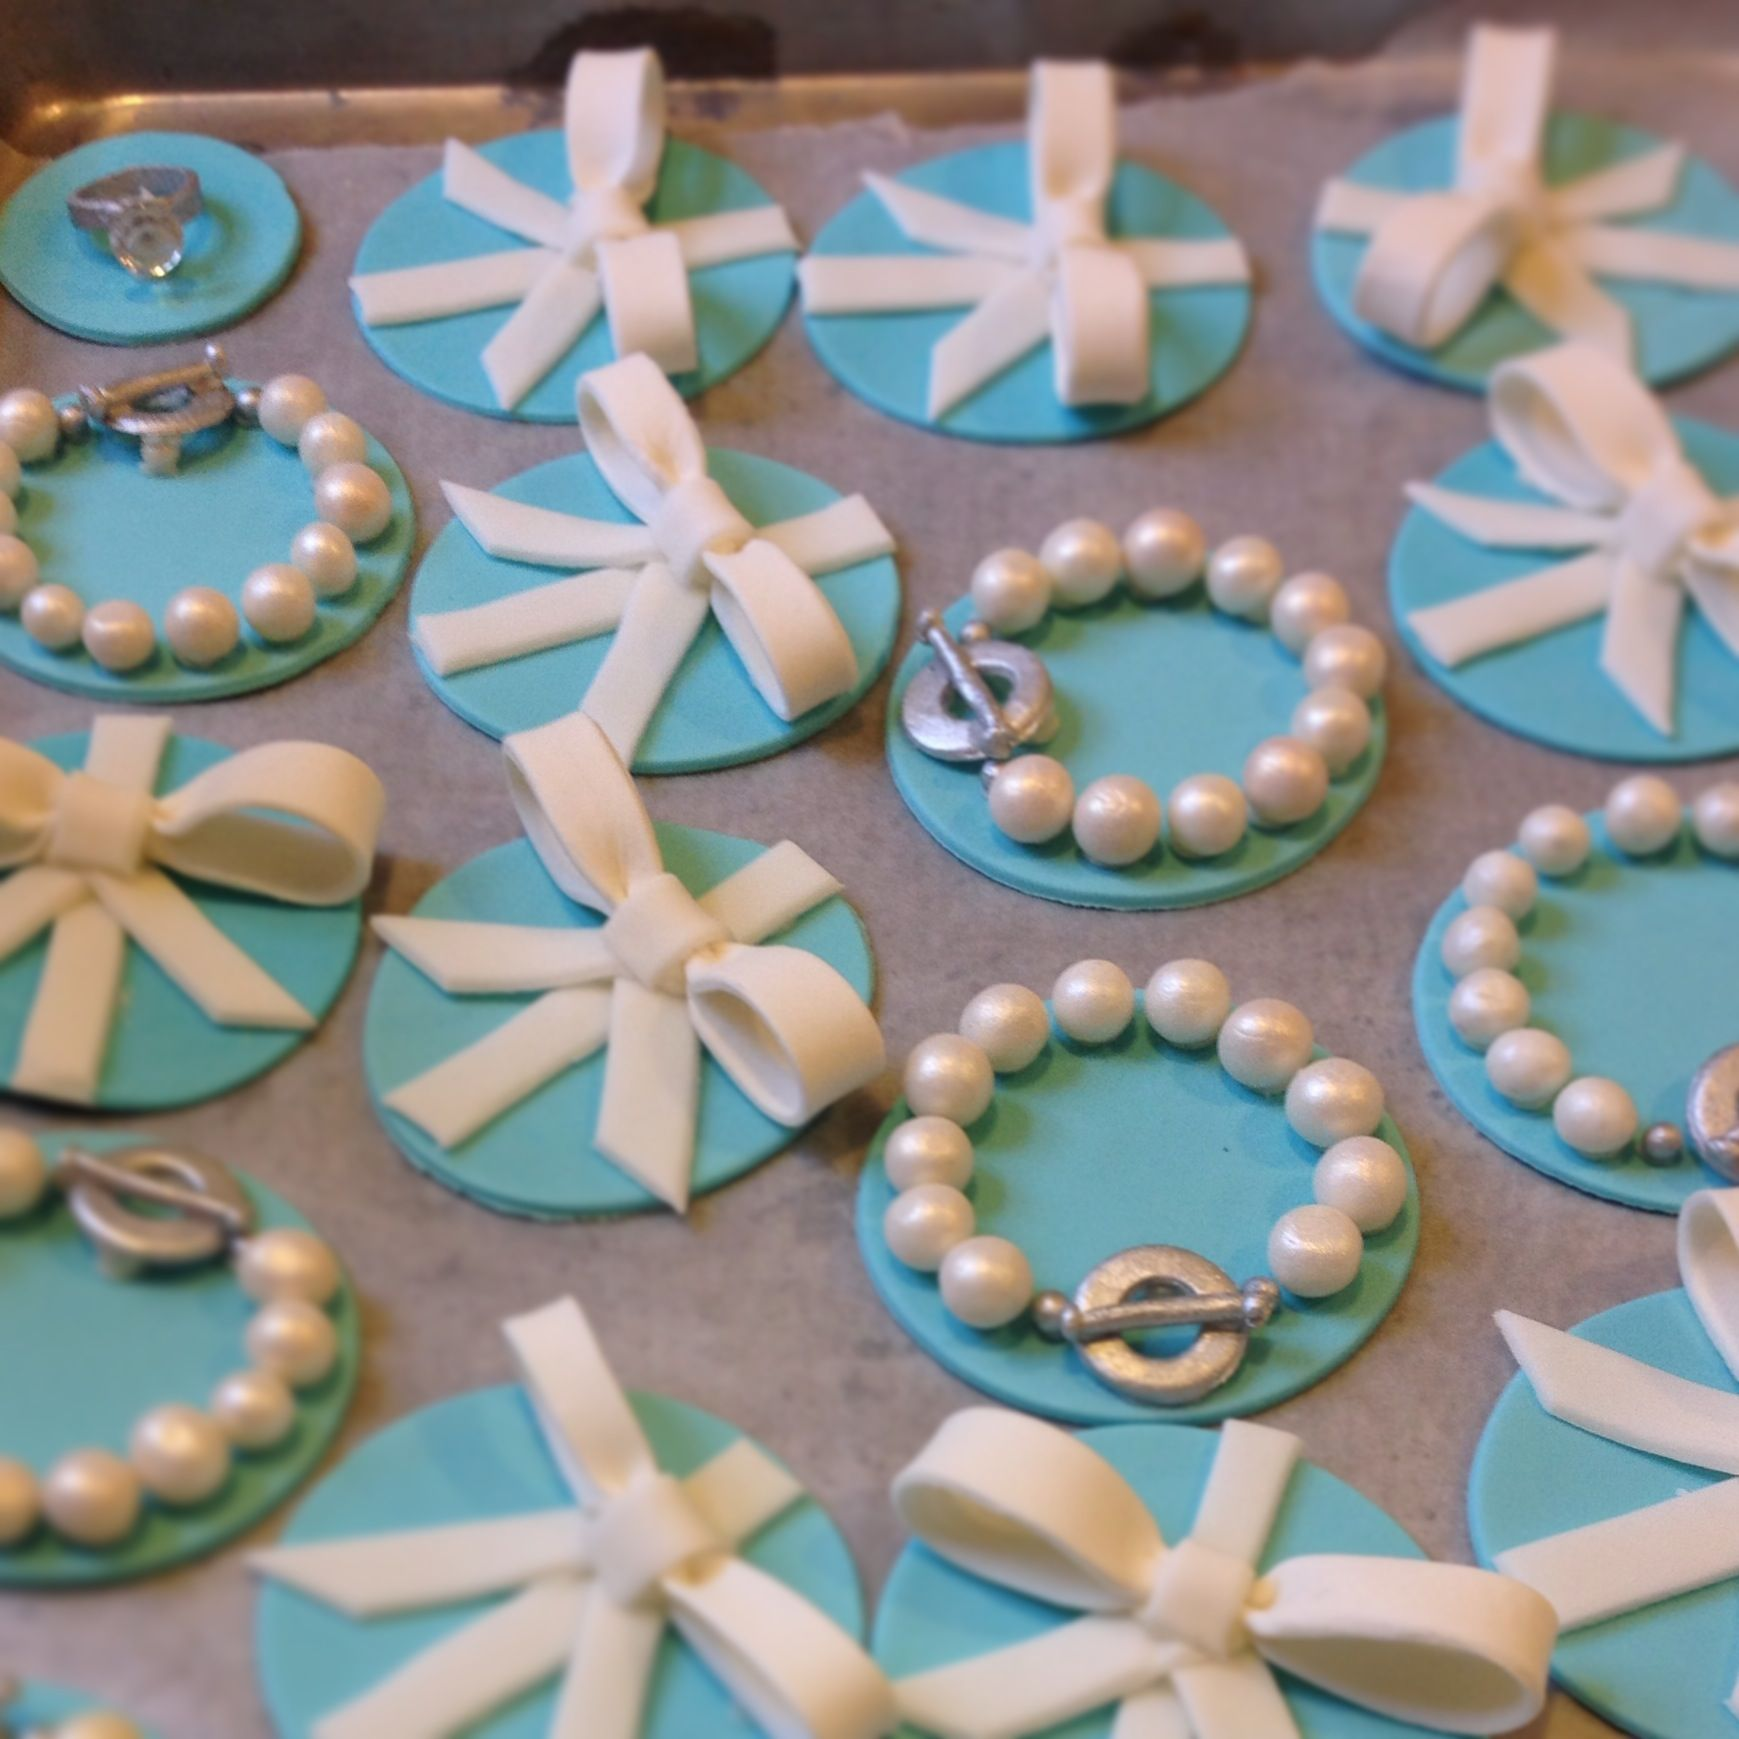 Tiffany & Co. Themed cupcake toppers, bracelets, bows and rings.